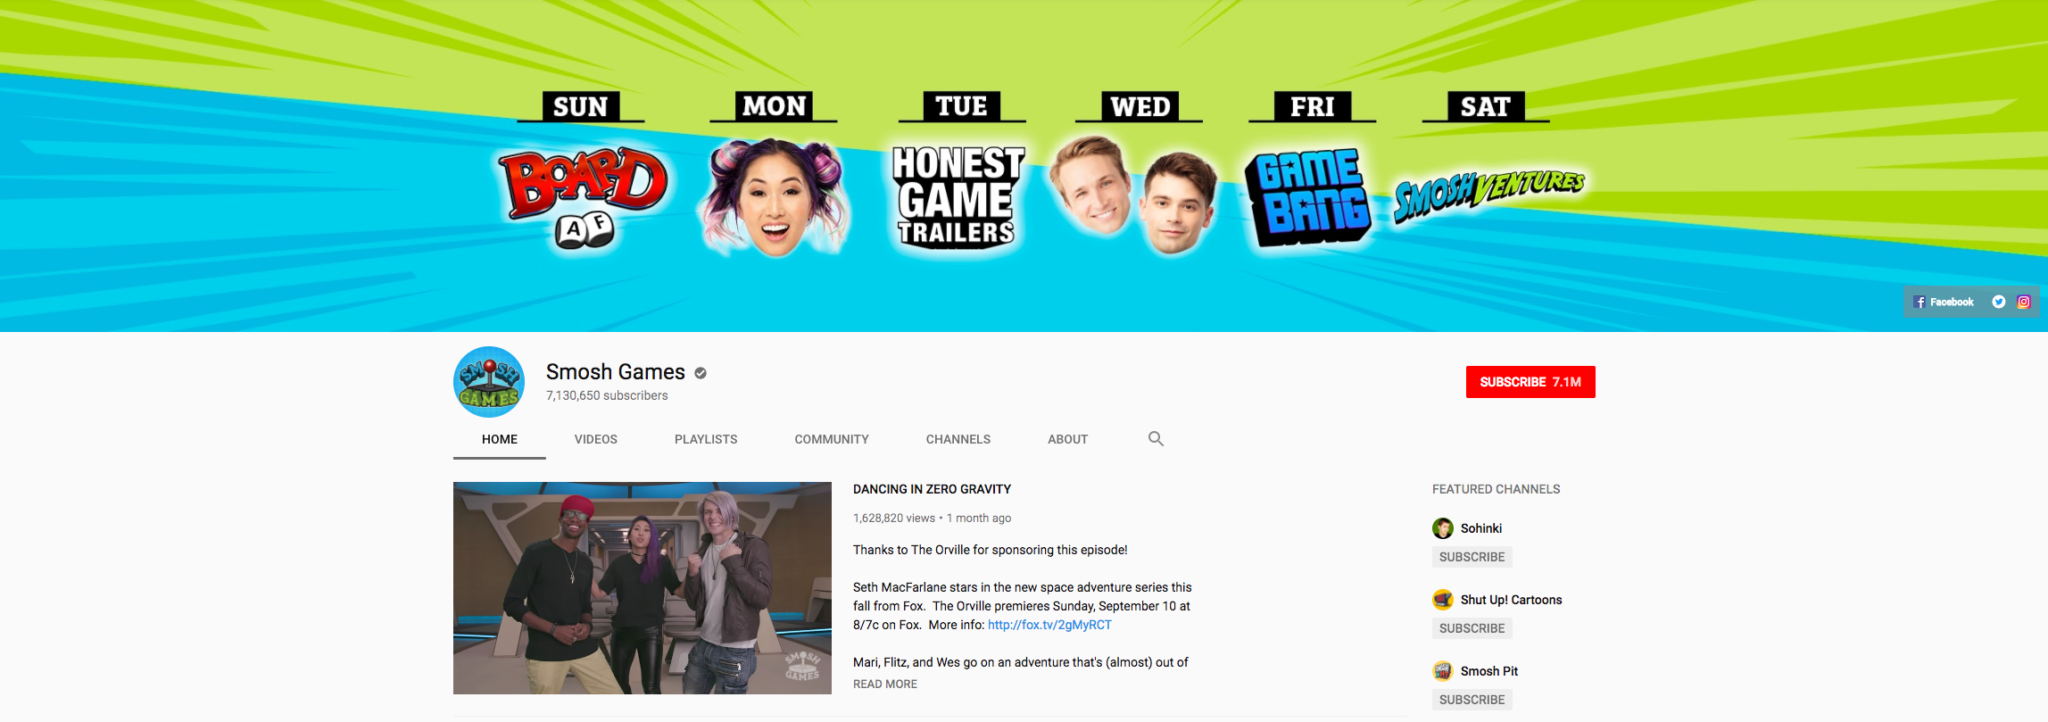 Smosh Games Top Gaming Influencers